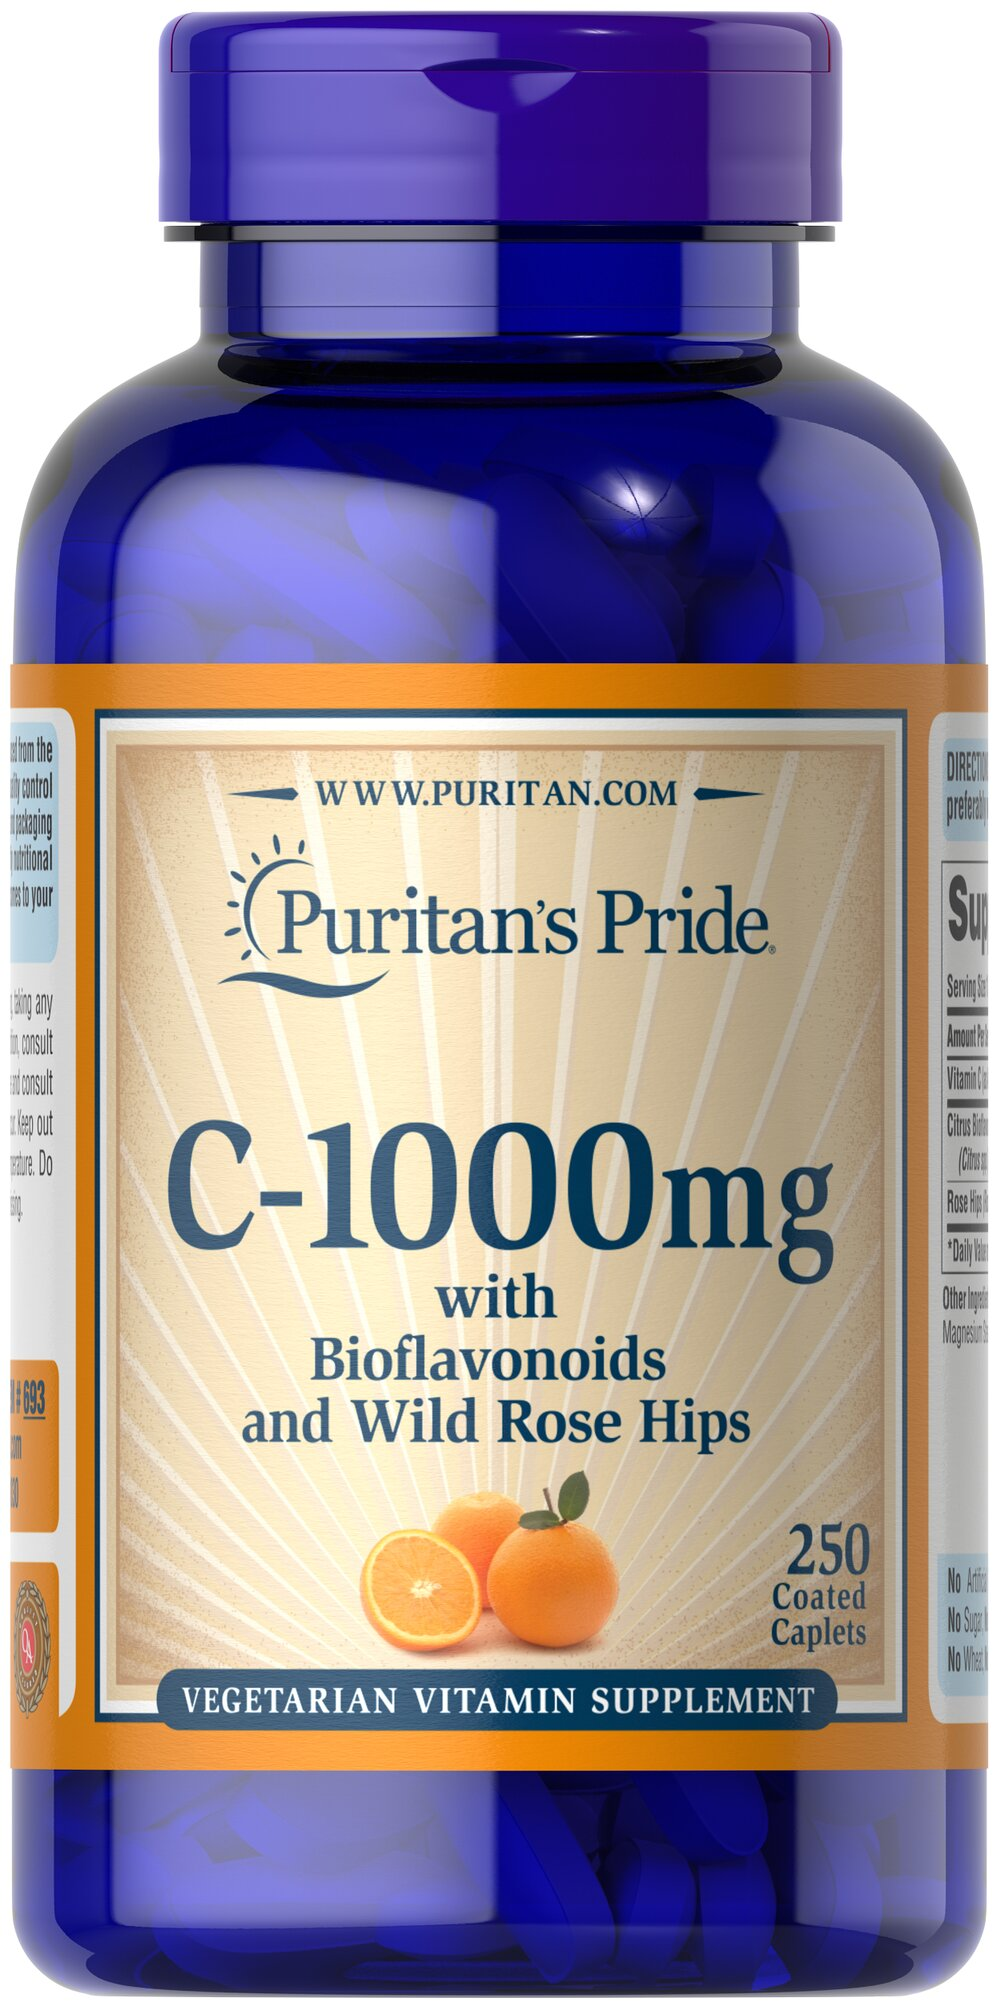 Vitamin C-1000 mg with Bioflavonoids & Rose Hips <p>Vitamin C  is essential to many functions in the body and is one of the leading vitamins for immune support and helps fight cell-damaging free radicals.**  Our product also includes Rose Hips, which help the body absorb and utilize Vitamin C.**</p><p>Offers superior antioxidant support.**</p><p>Supports healthy immune function and promotes well-being.**</p> 250 Caplets 1000 mg $17.49